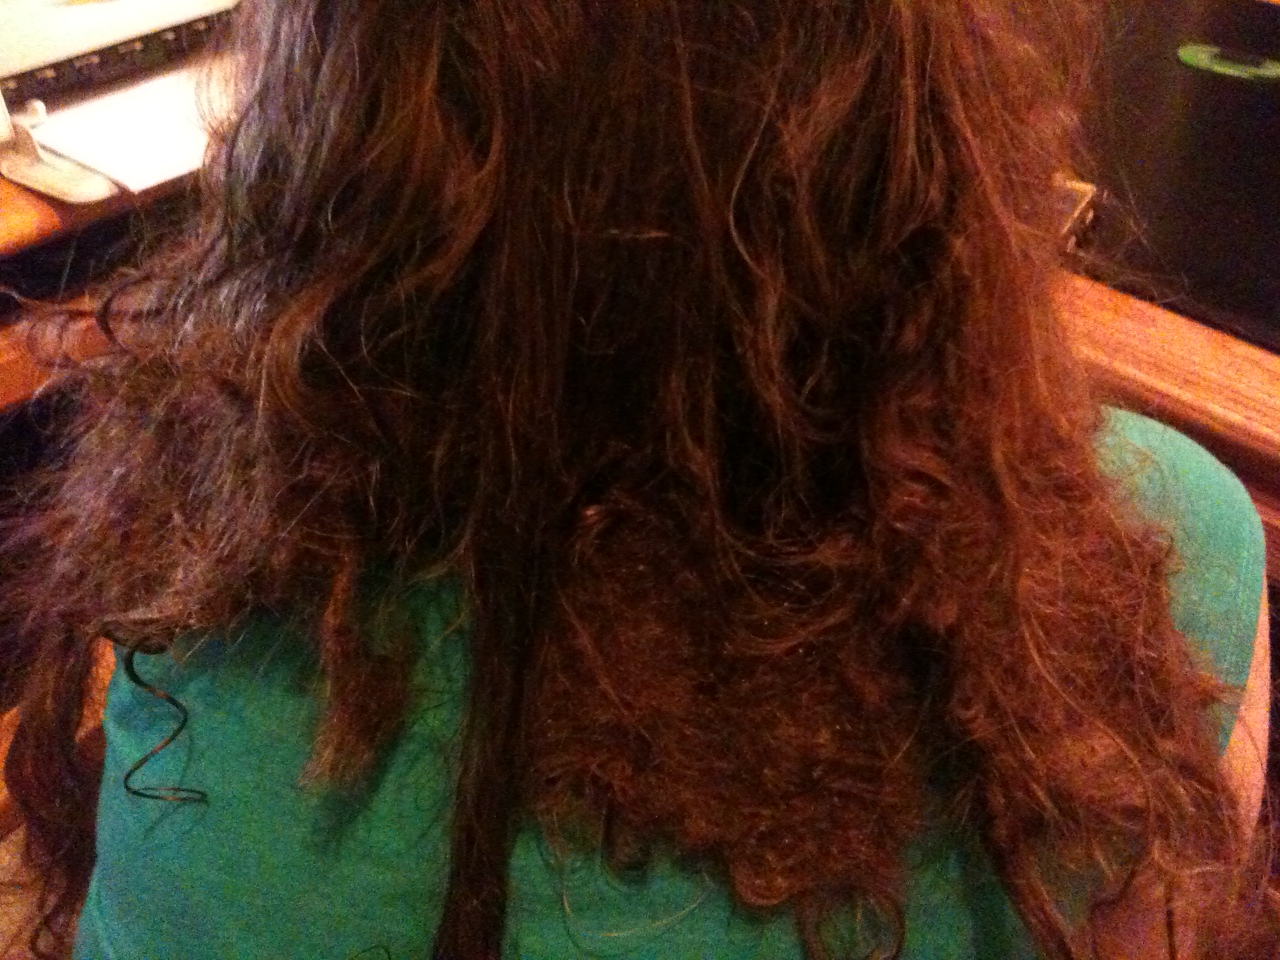 Tangled Hair Techs: You are NOT your matted tangled